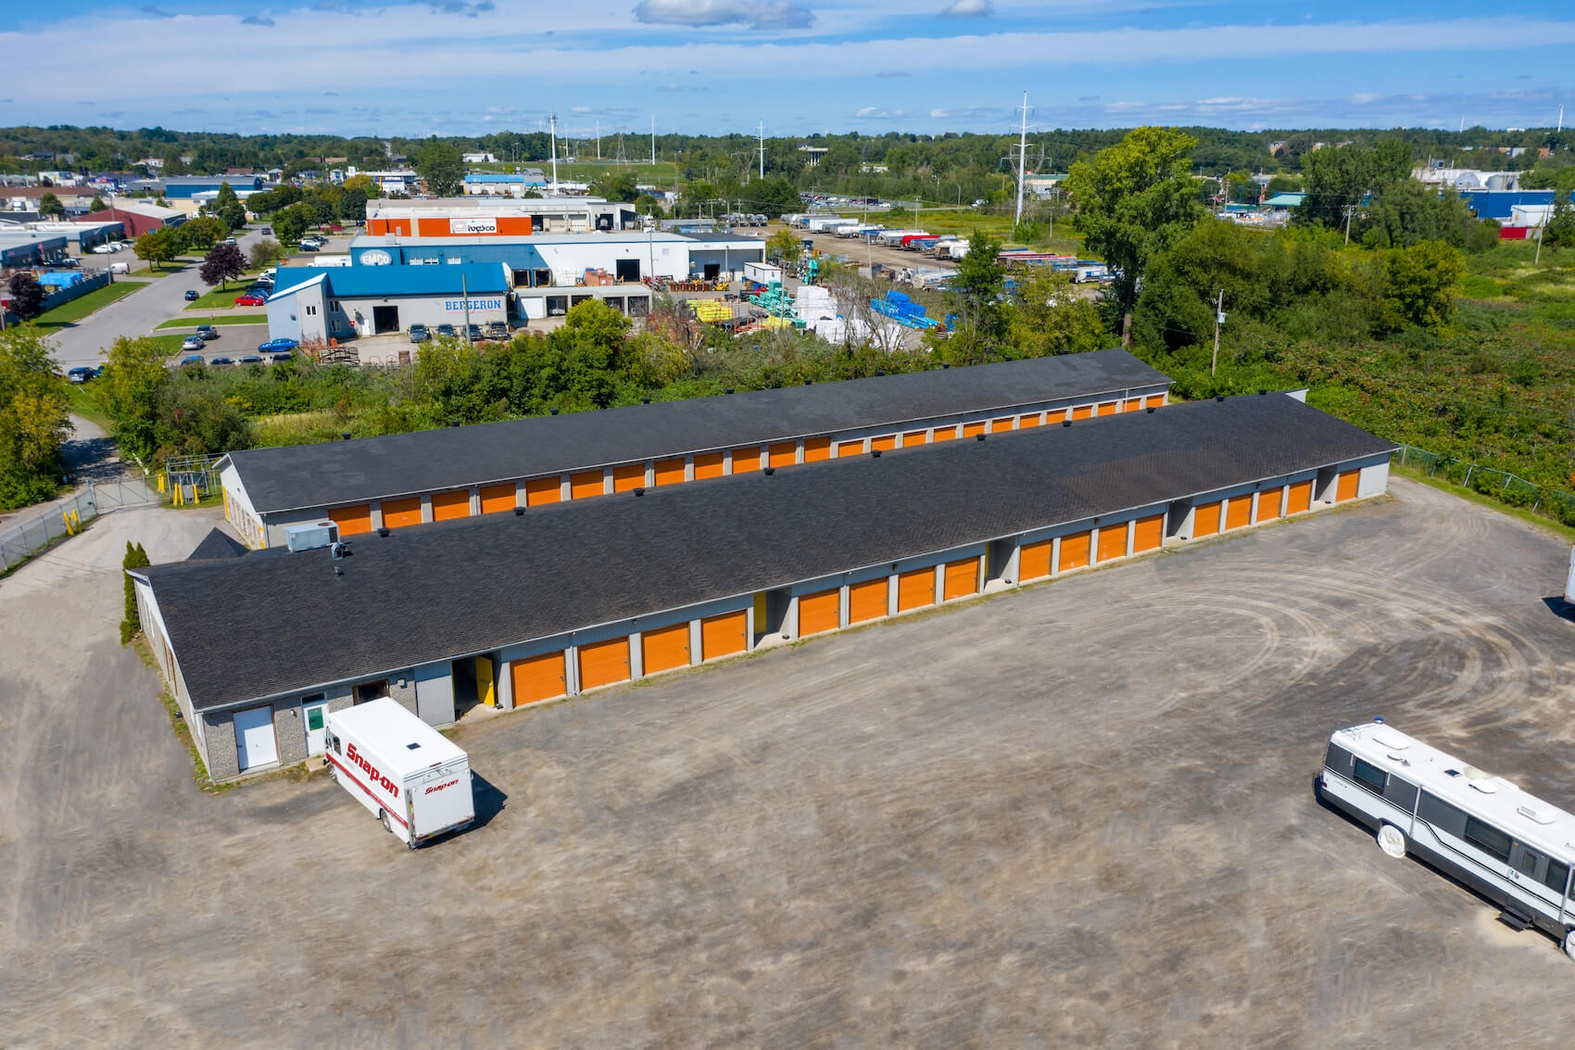 Rent Trois-Rivières storage units at 2300 de la Sidbec S. We offer a wide-range of affordable self storage units and your first 4 weeks are free!